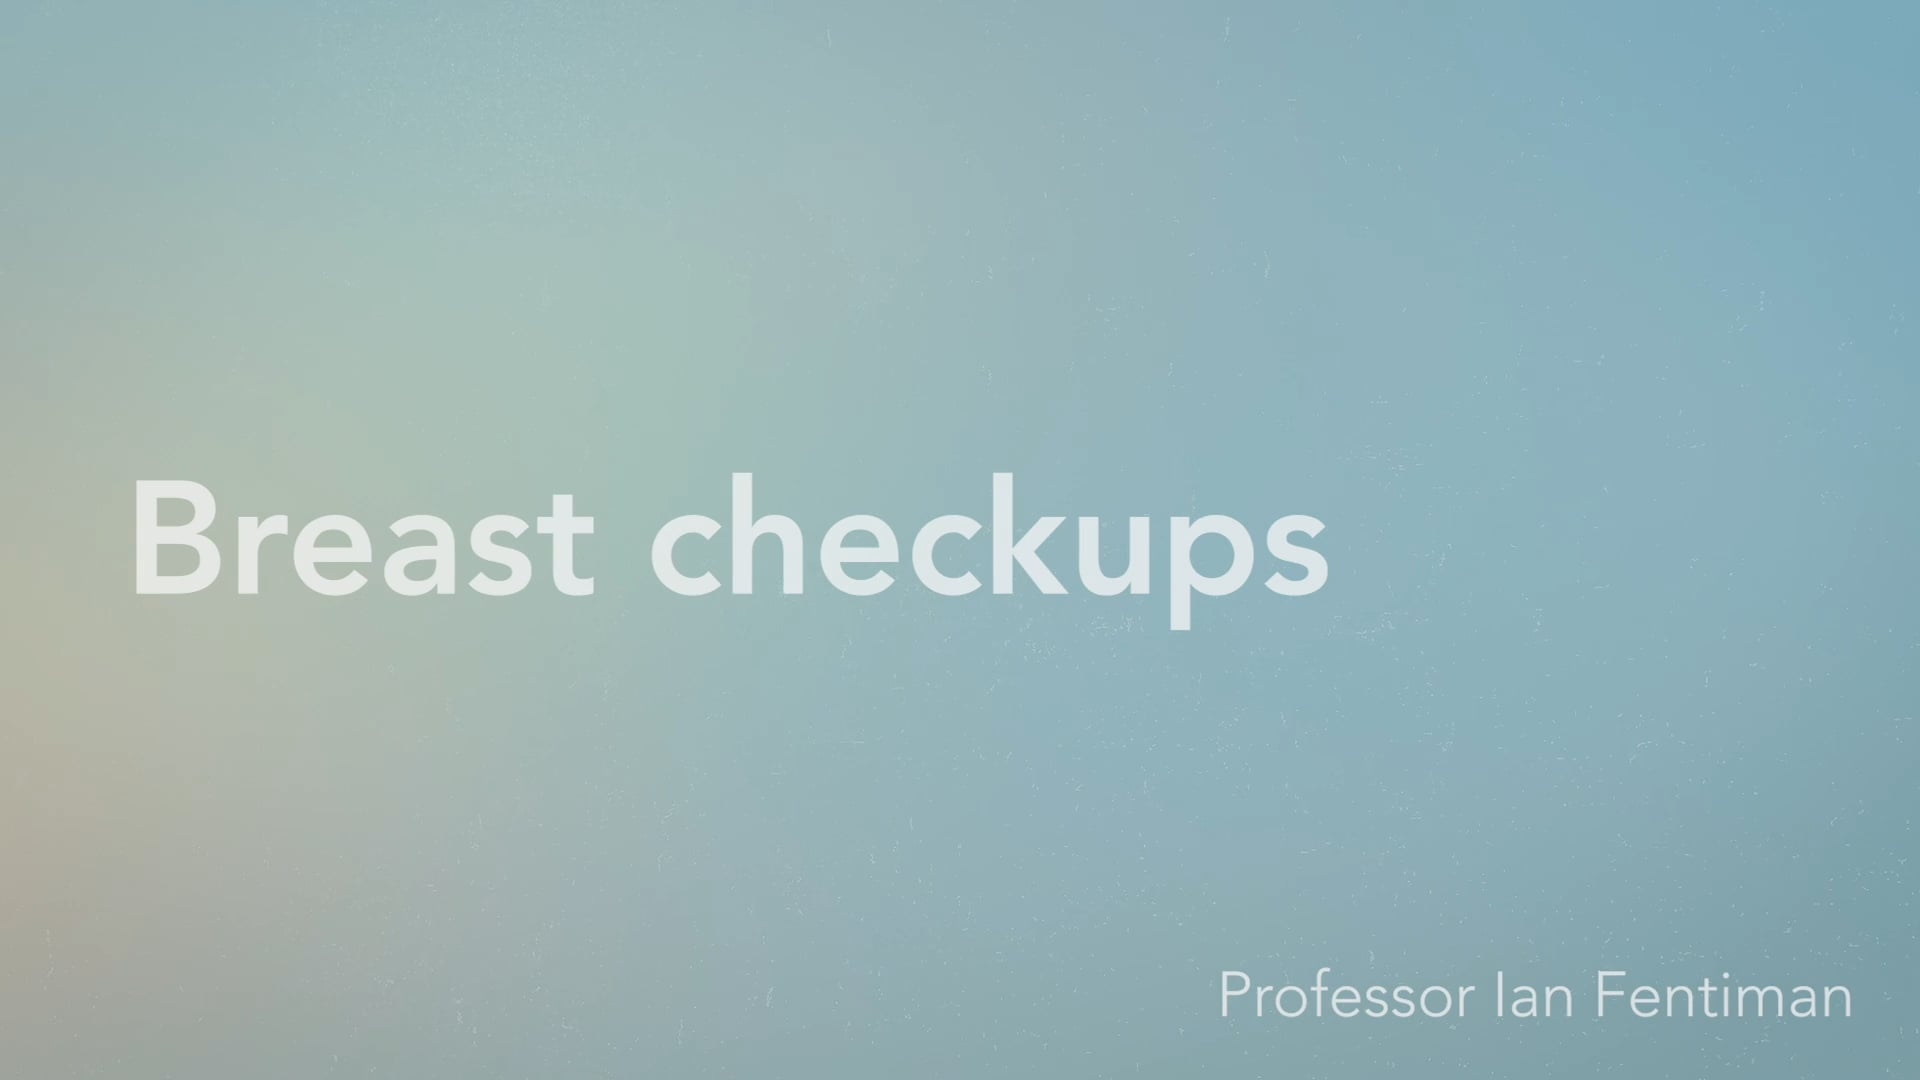 Breasts check ups - Vimeo thumbnail